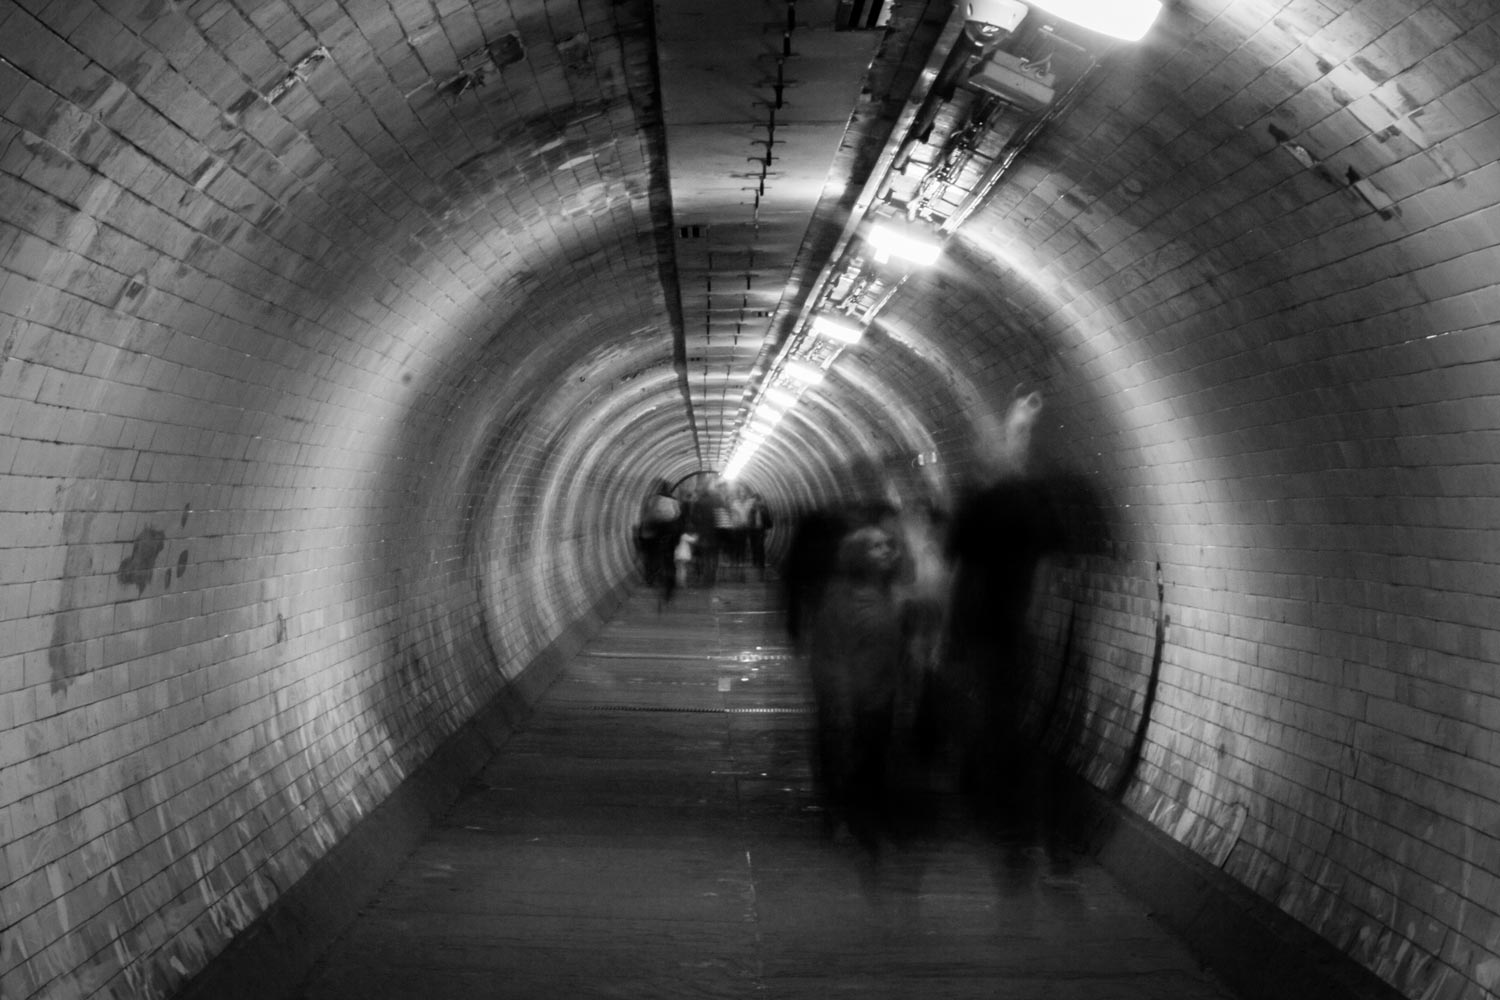 Ghosts in a tunnel